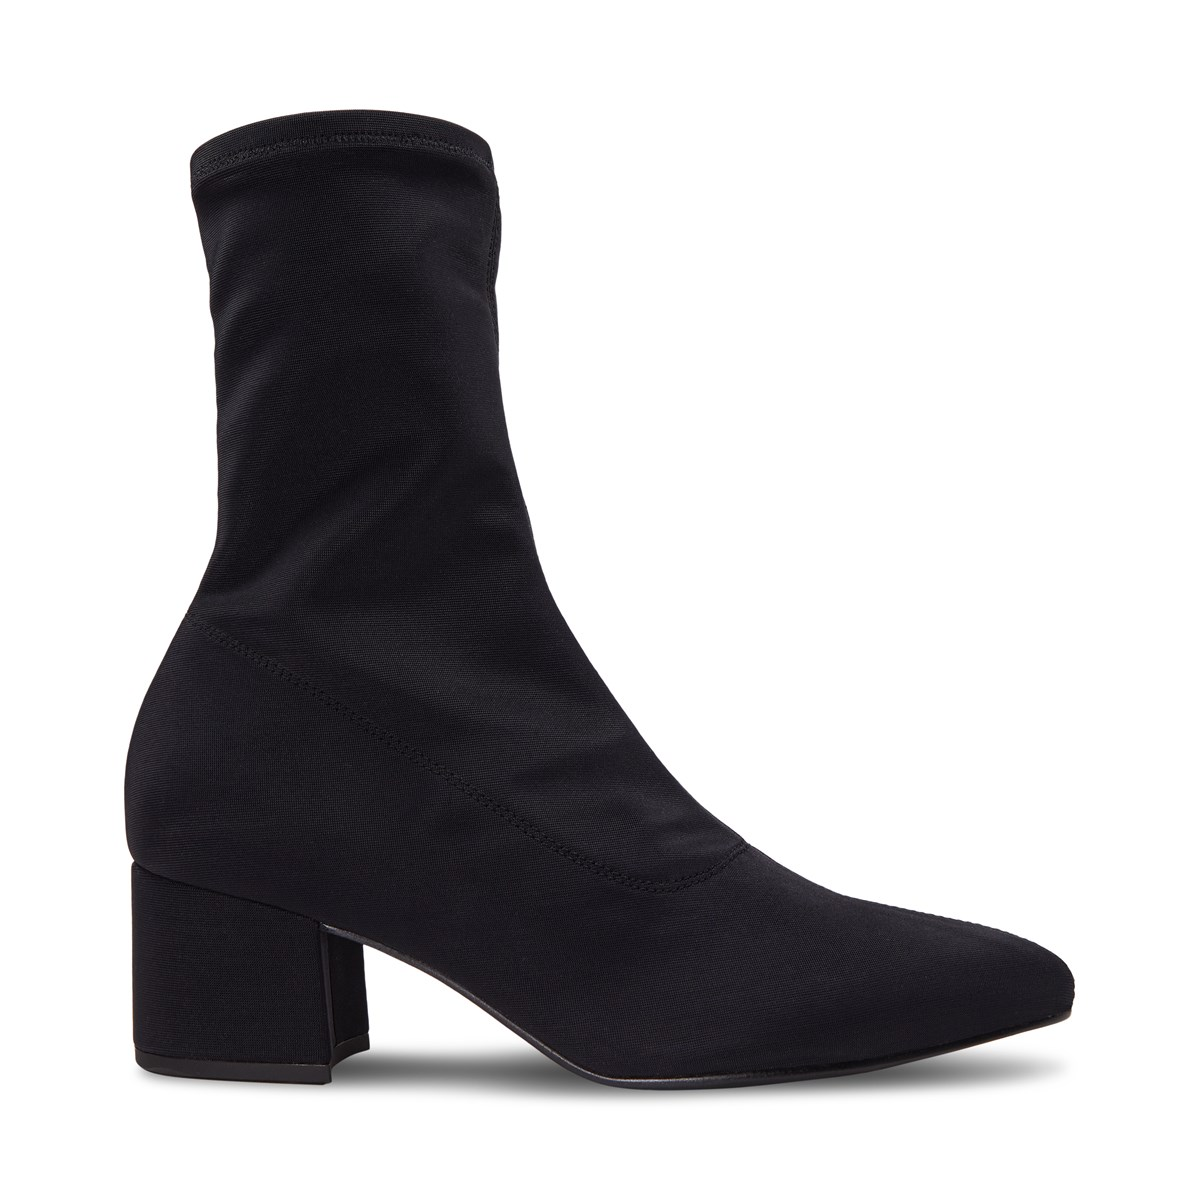 Women's Mya Sock Boots in Black